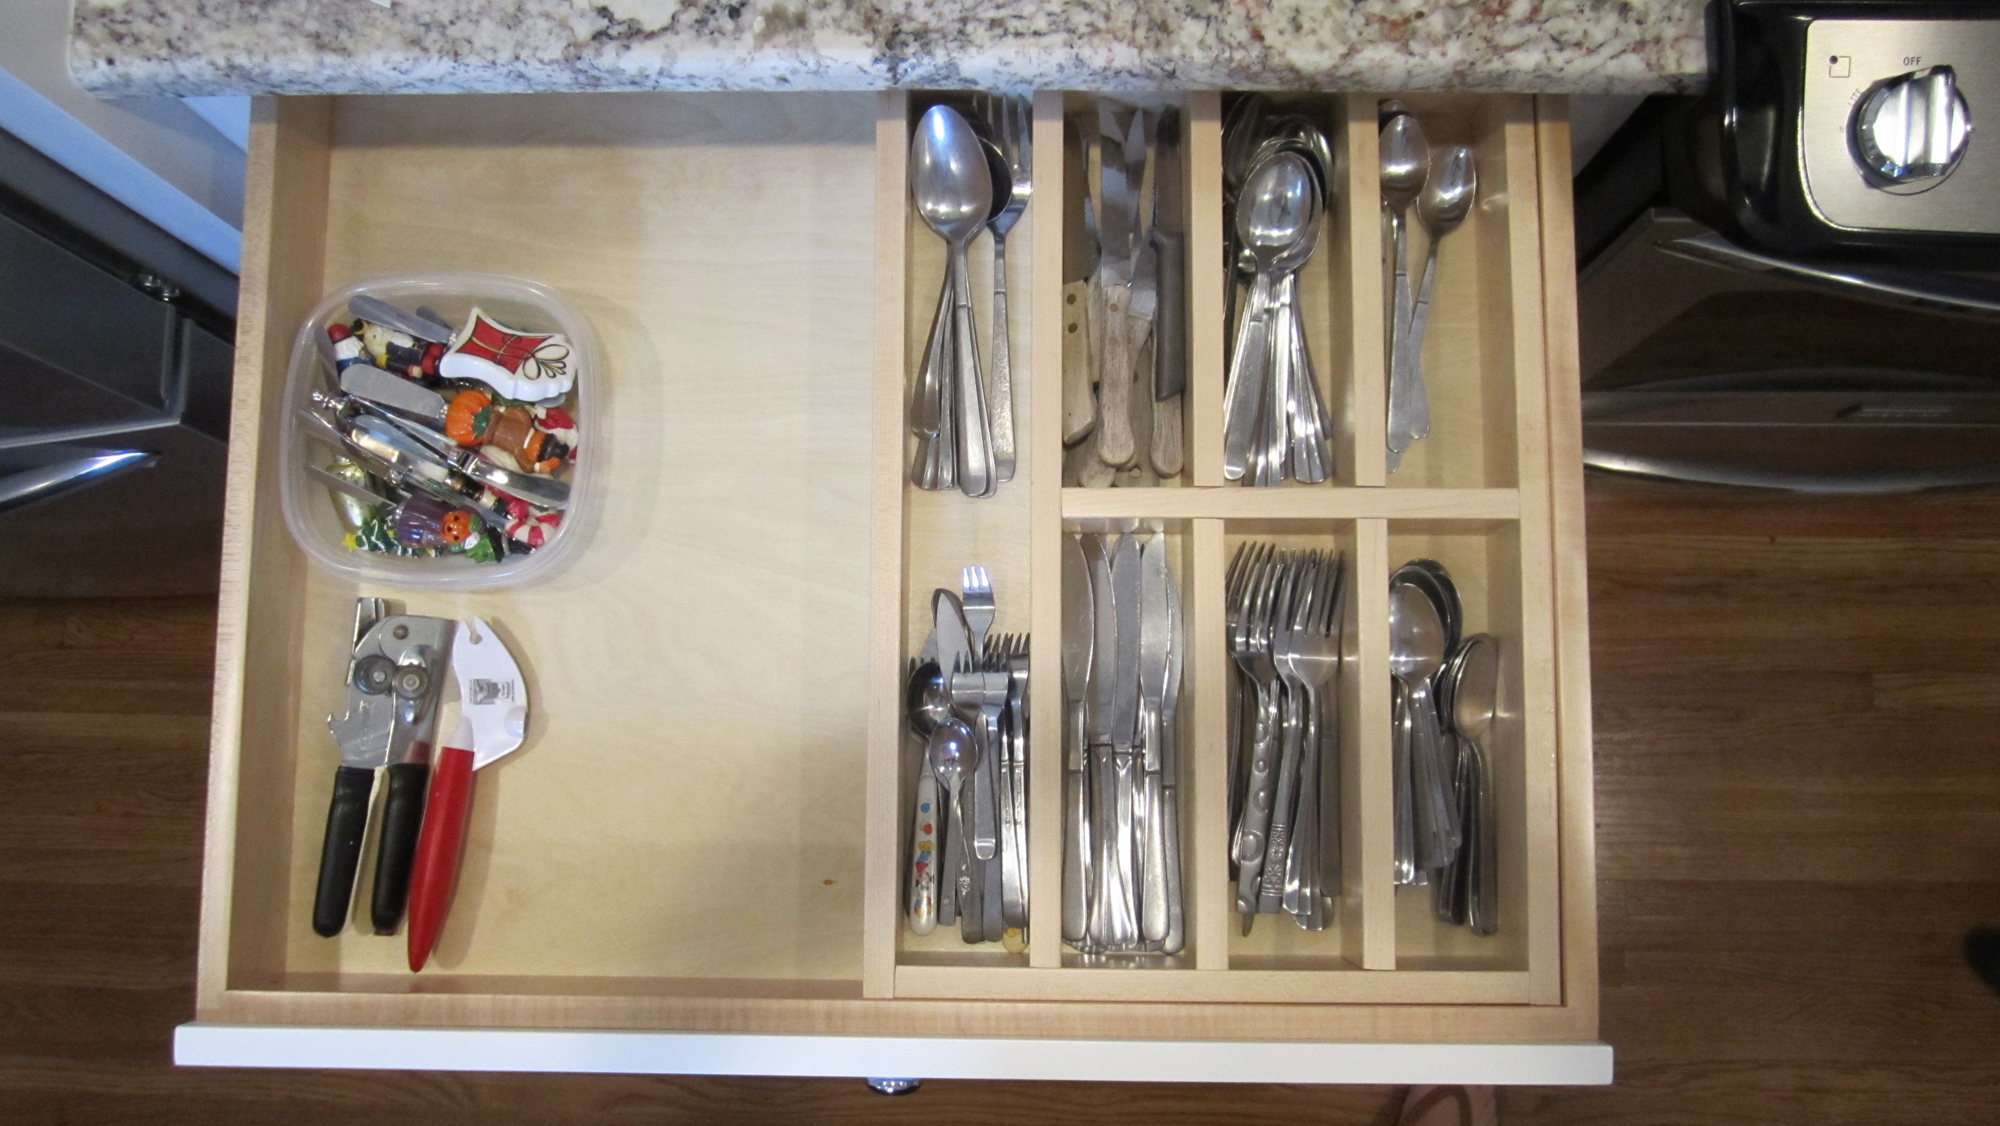 Silverware-Drawer